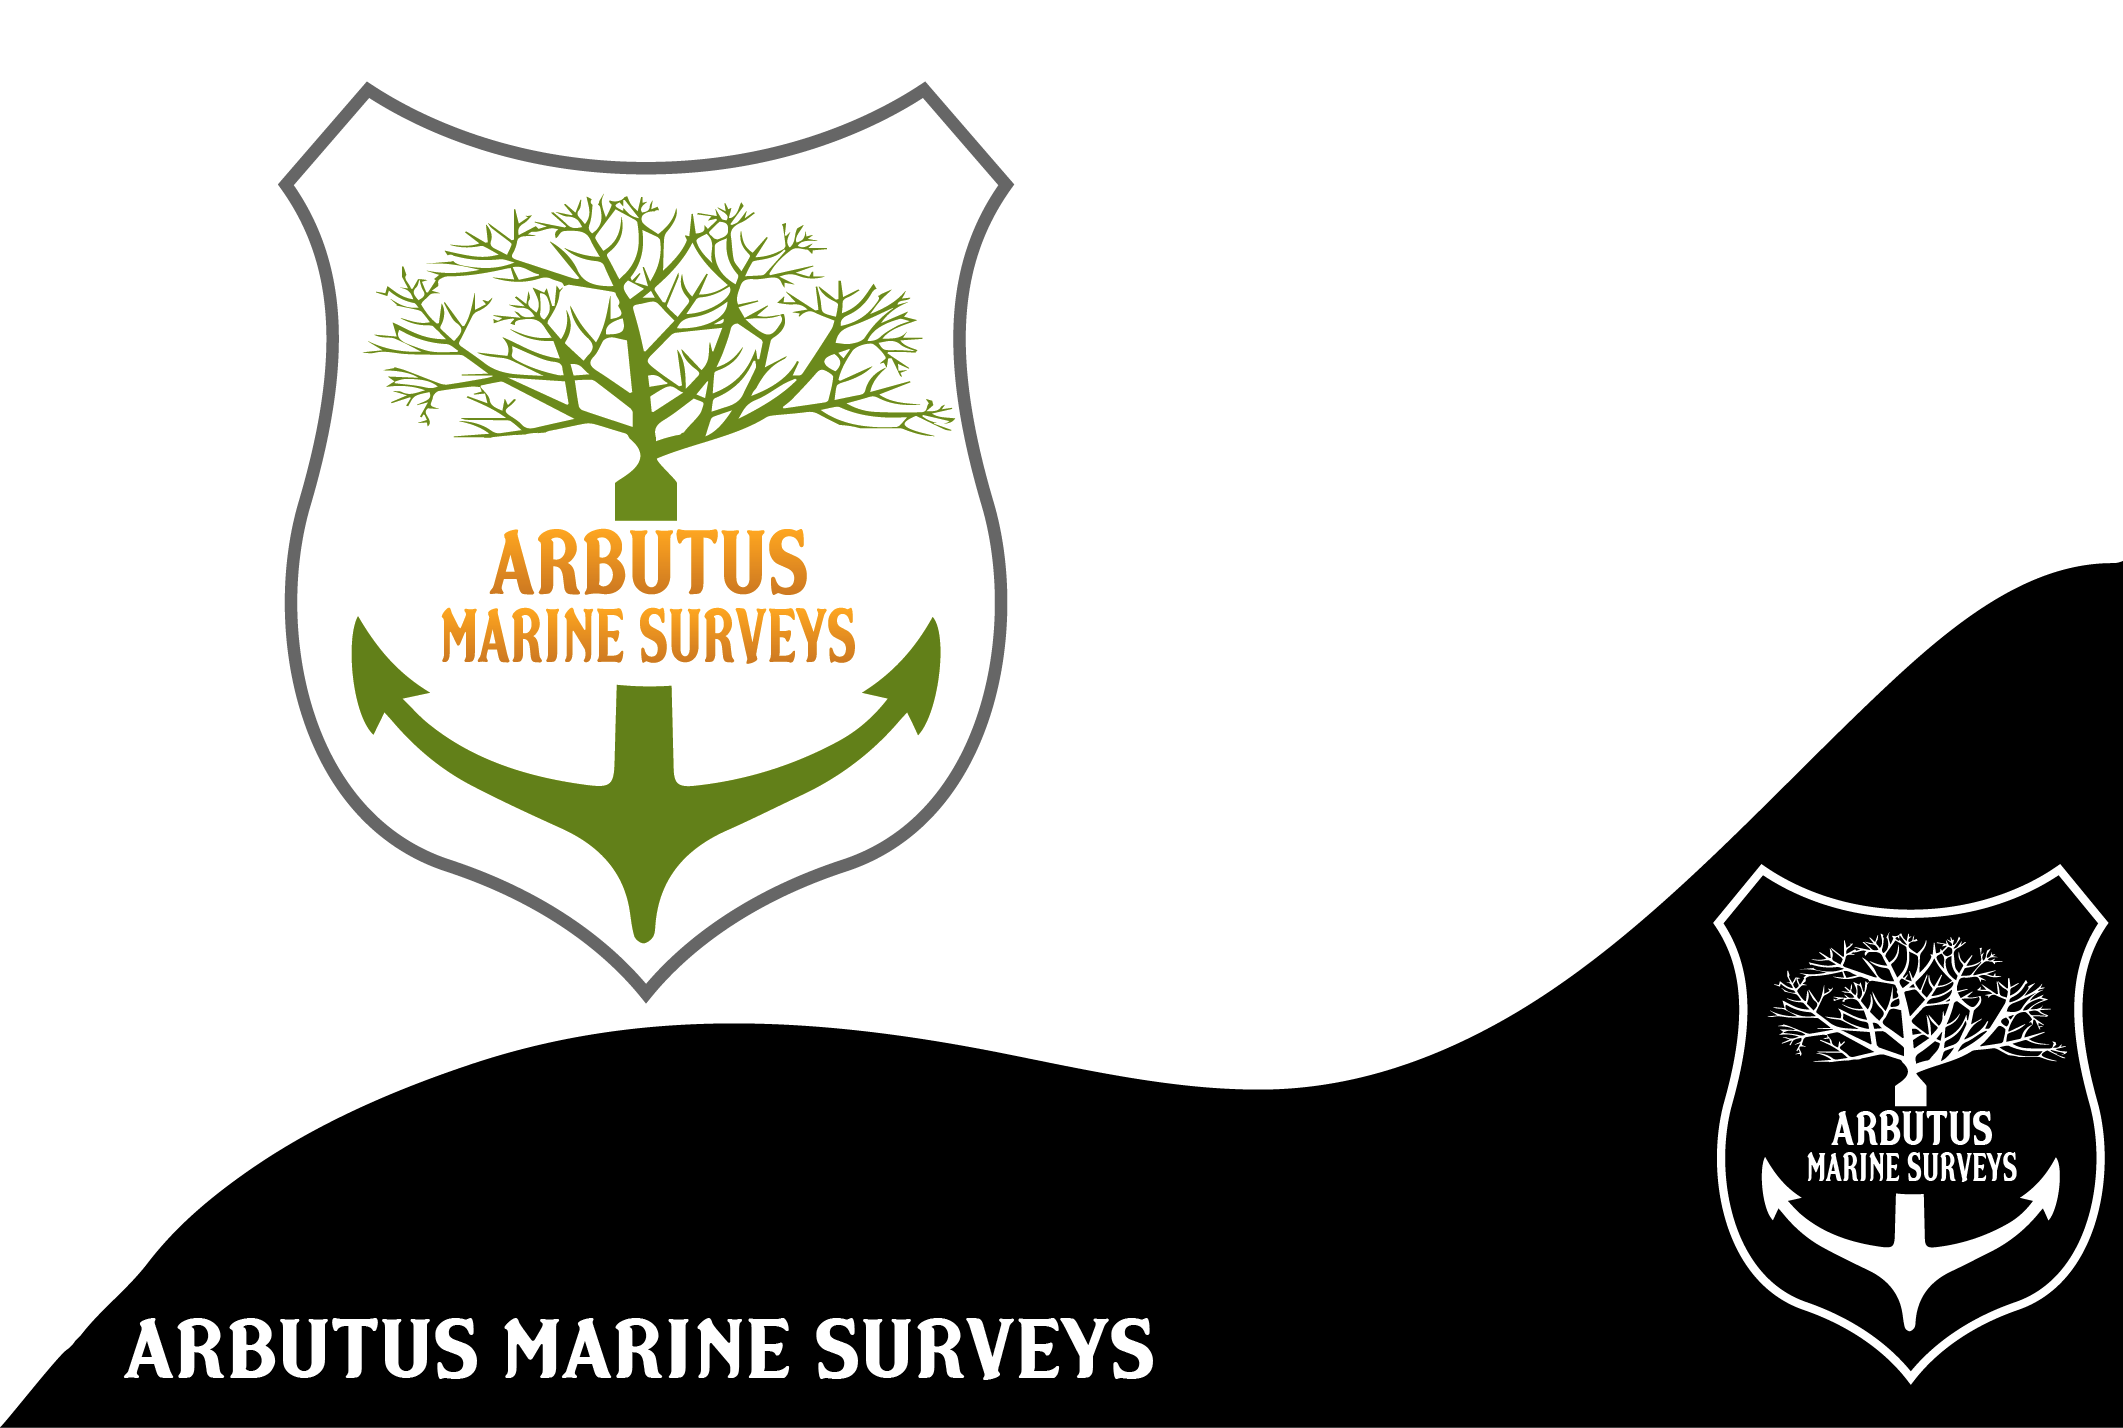 Logo Design by Maninder pal Singh - Entry No. 19 in the Logo Design Contest Professional Business Logo Design for Arbutus Marine Surveys.